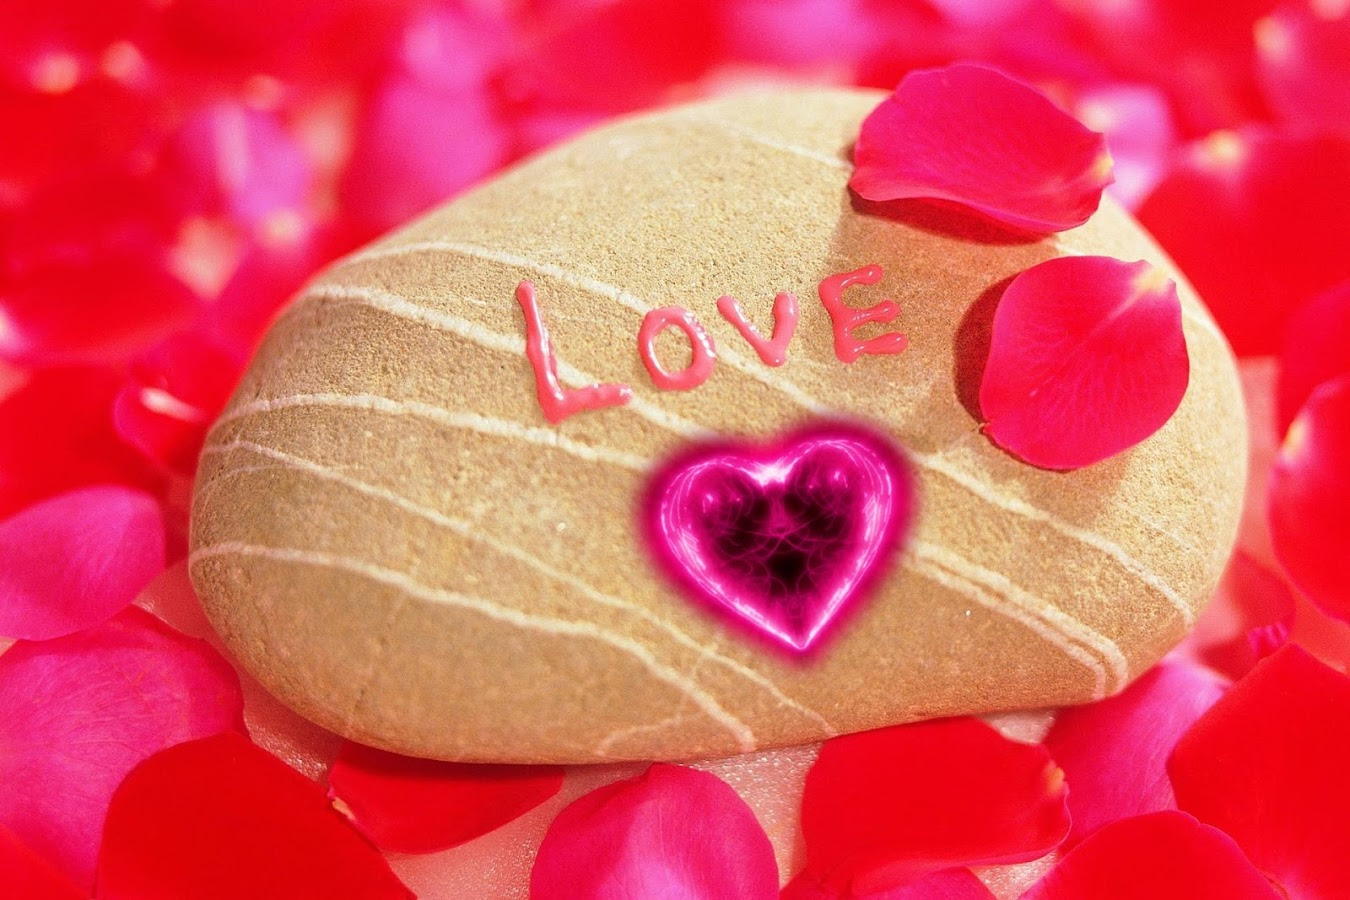 High Quality Love Image Wallpaper Love Wall Paper 76957 Hd